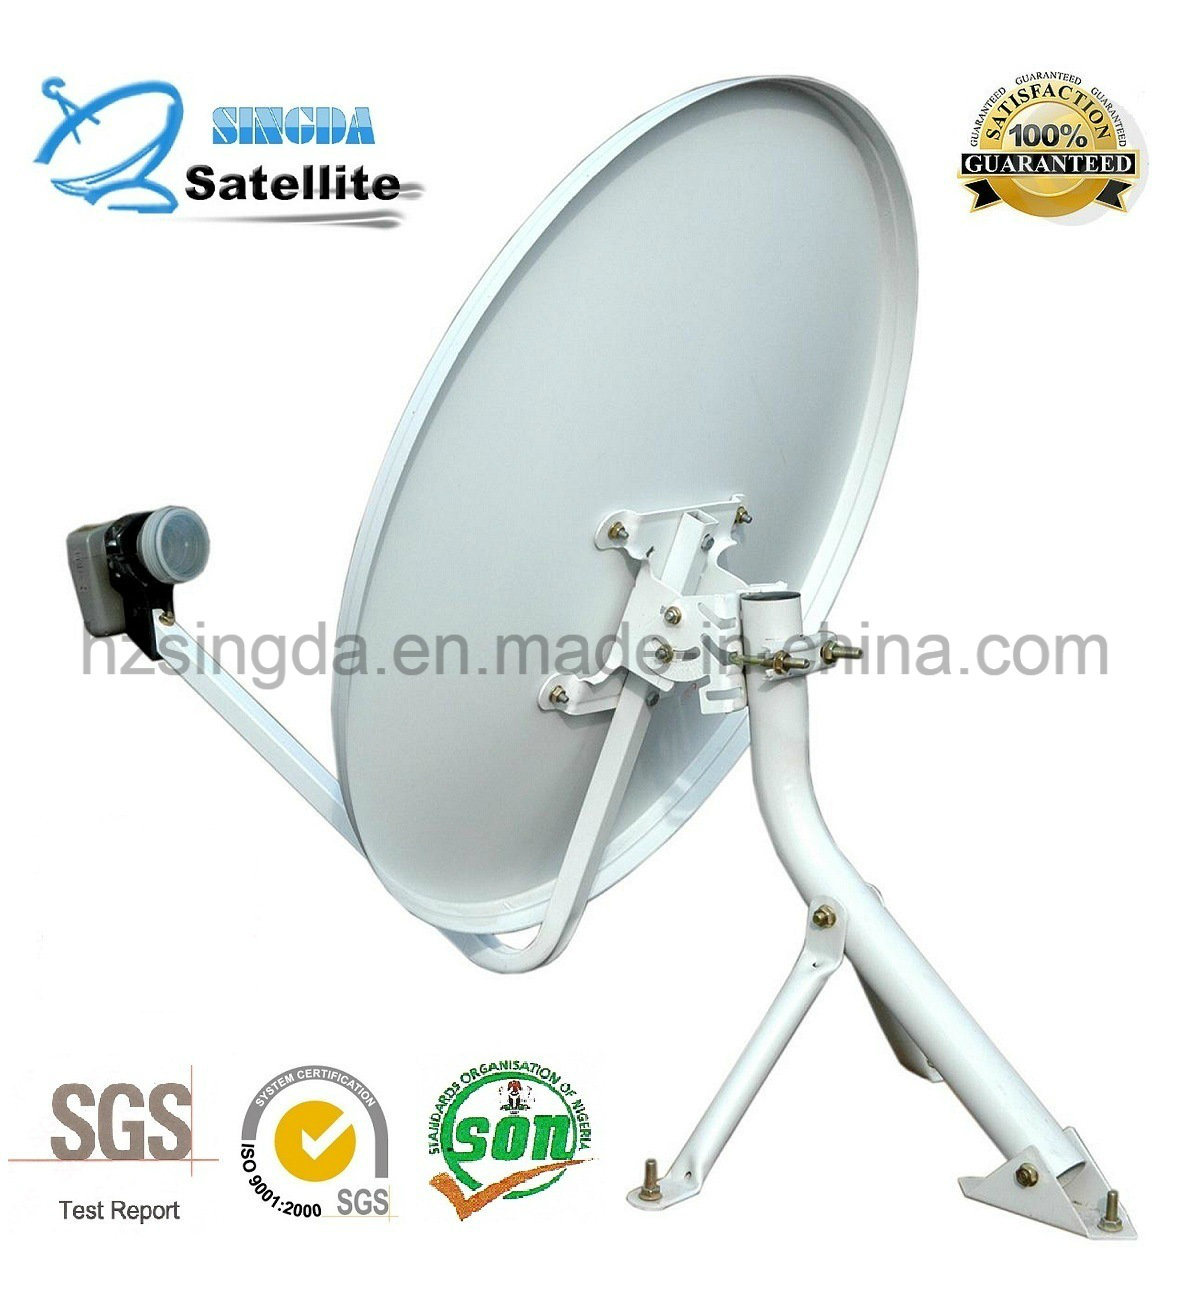 Outdoor TV antenna and satellite dish antenna with SGS Certification pictures & photos